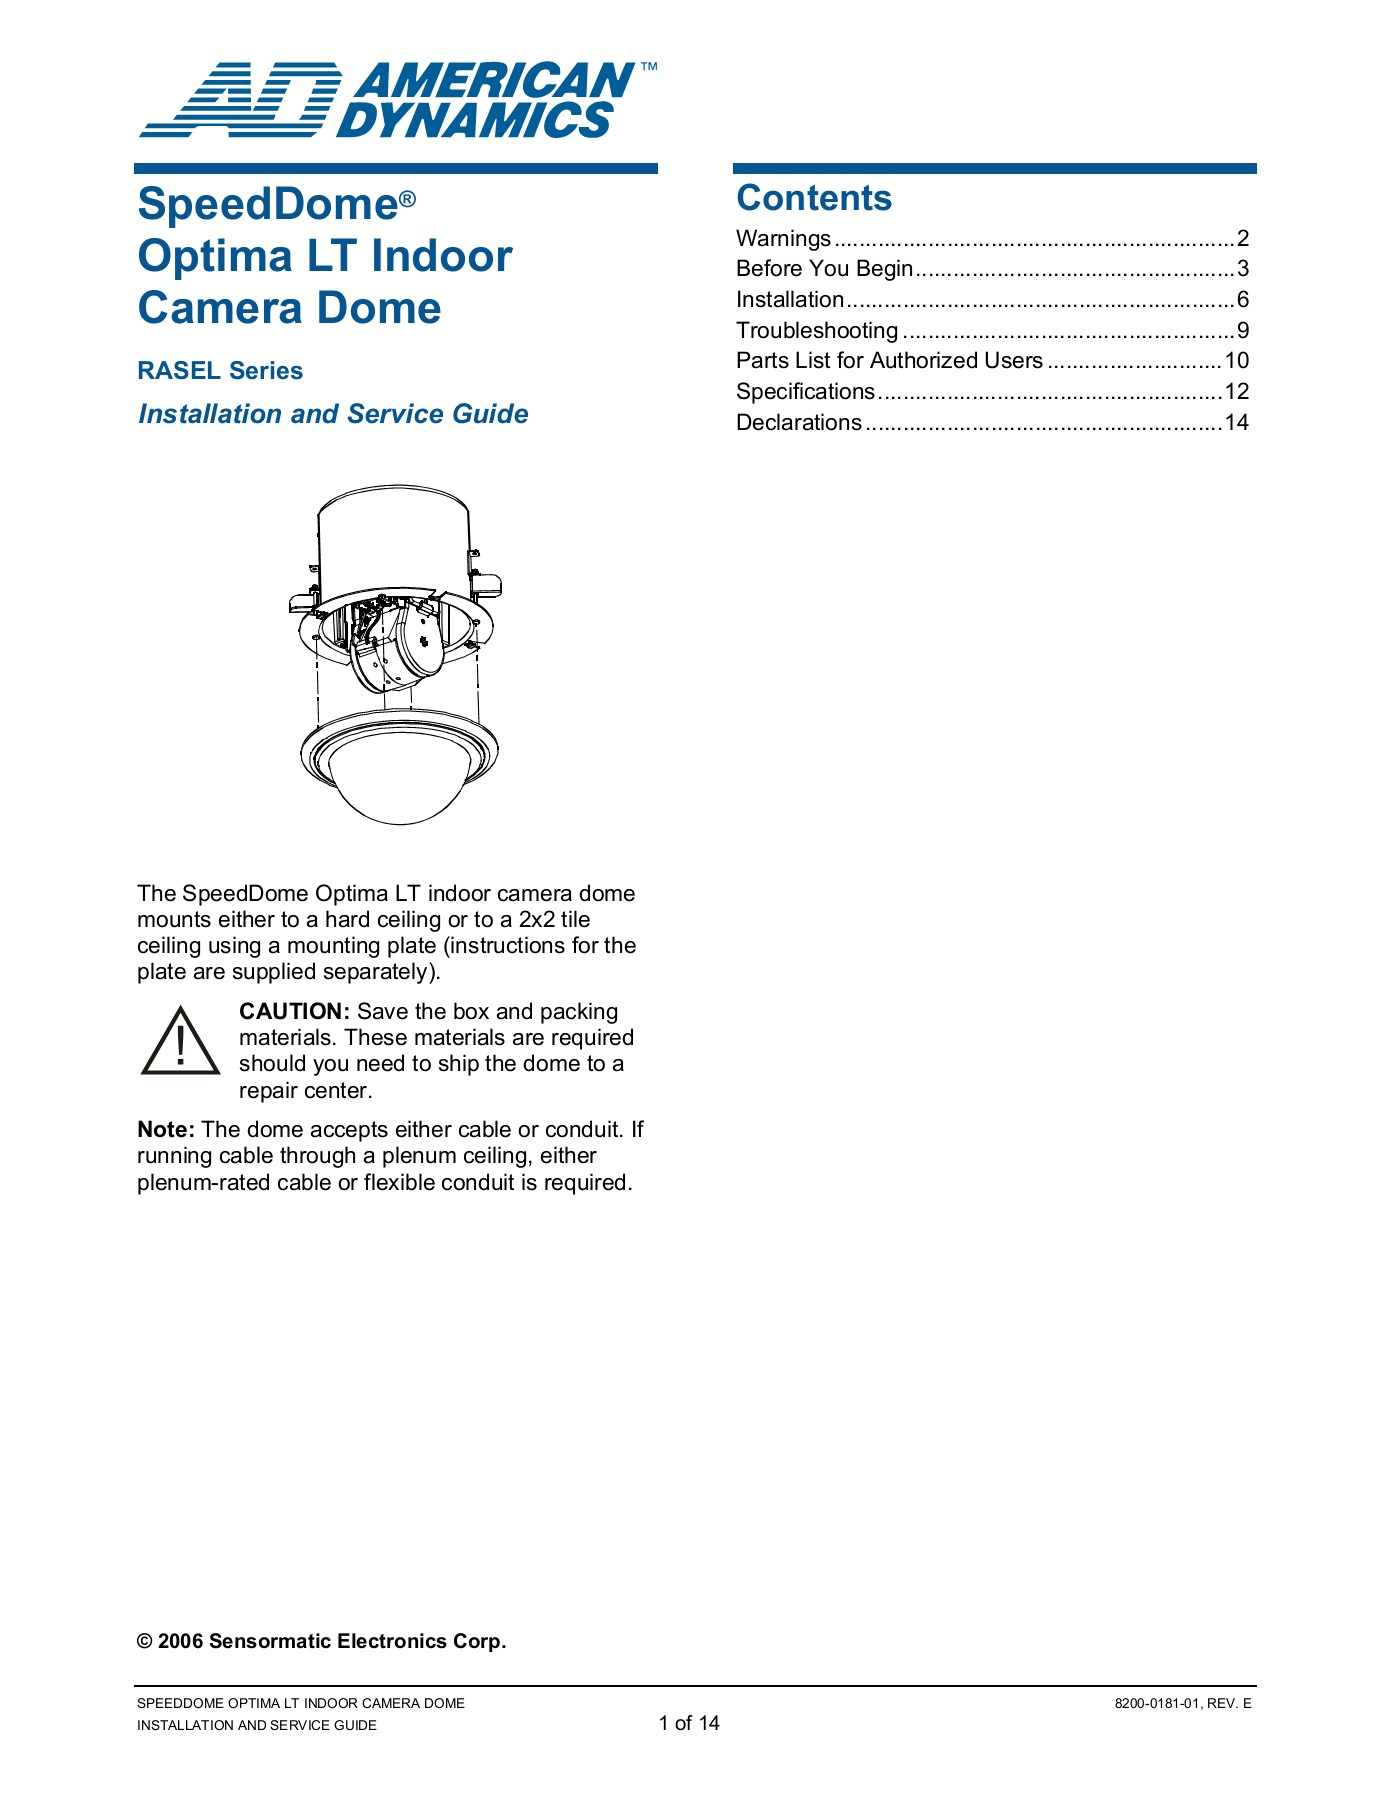 hight resolution of speeddome optima lt indoor camera dome 8200 0181 01 rev e installation and service guide 2 of 14 warnings please review the following warnings before you